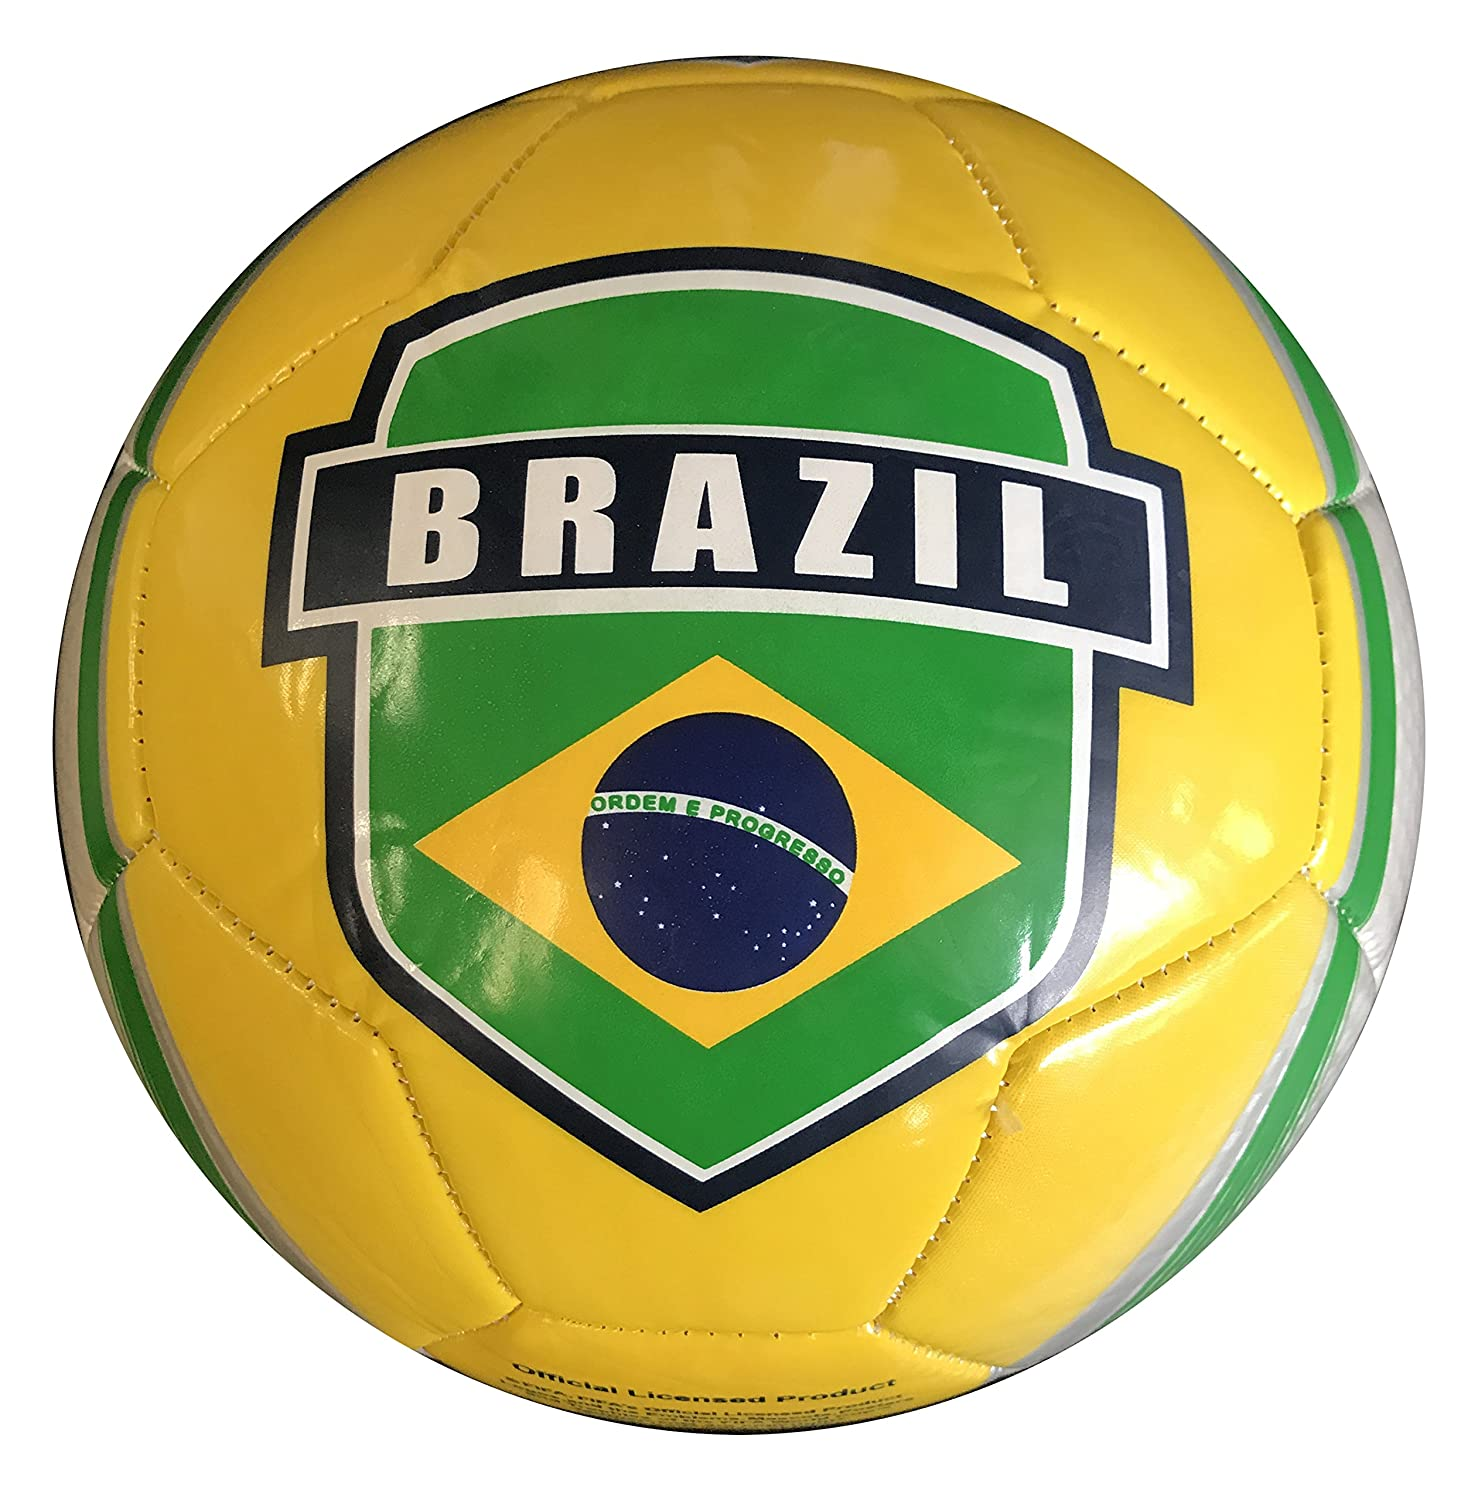 772aafd94 Amazon.com : Icon Sports World Cup 2018 Brazil Soccer Ball : Sports &  Outdoors